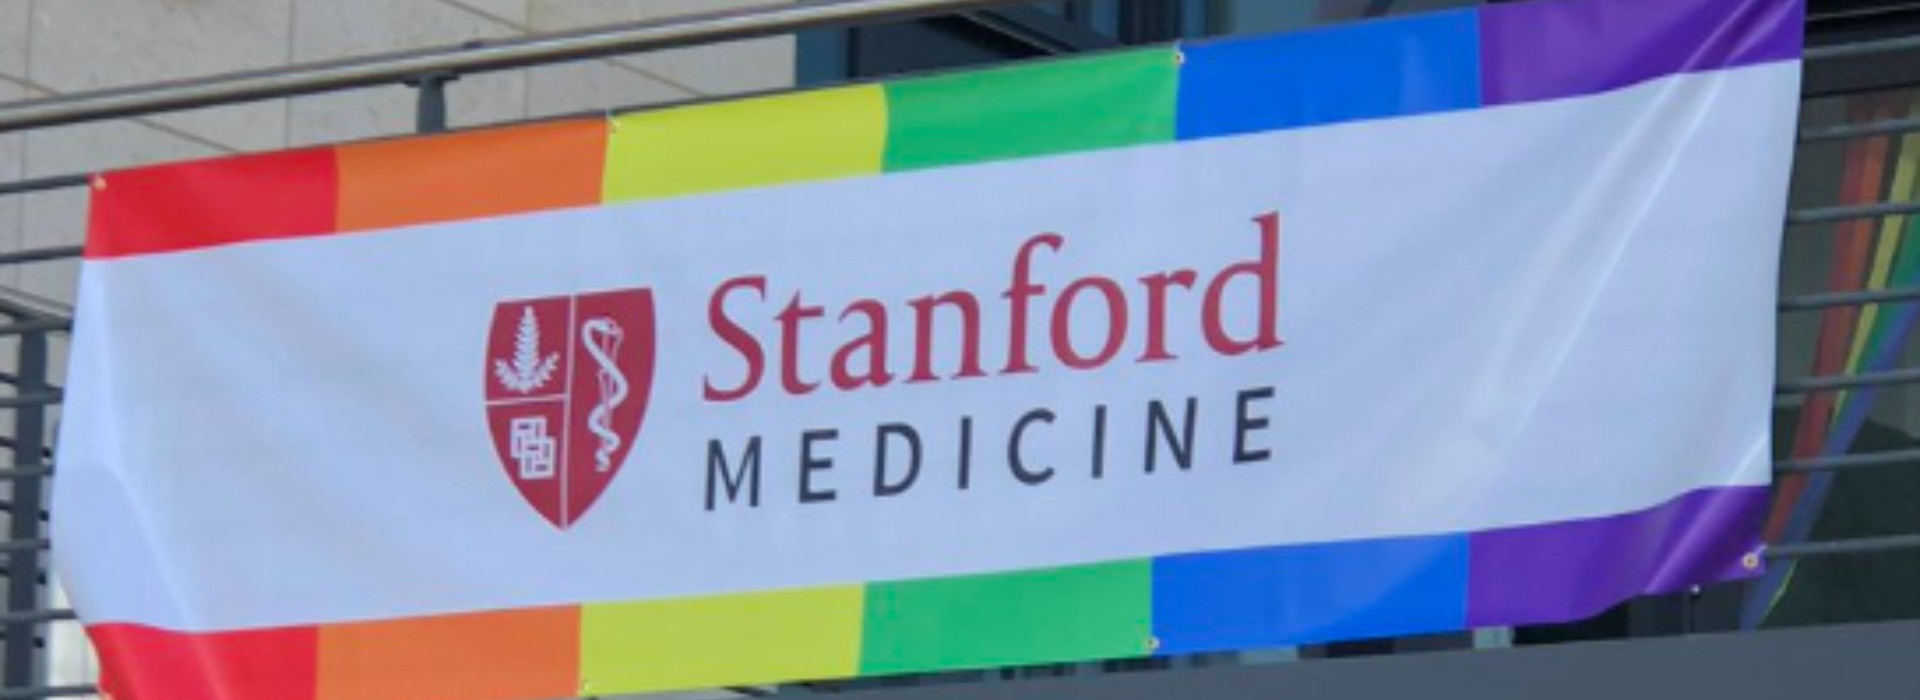 Text 'Stanford Medicine' between narrow banners of red, orange, yellow, green, blue, and purple